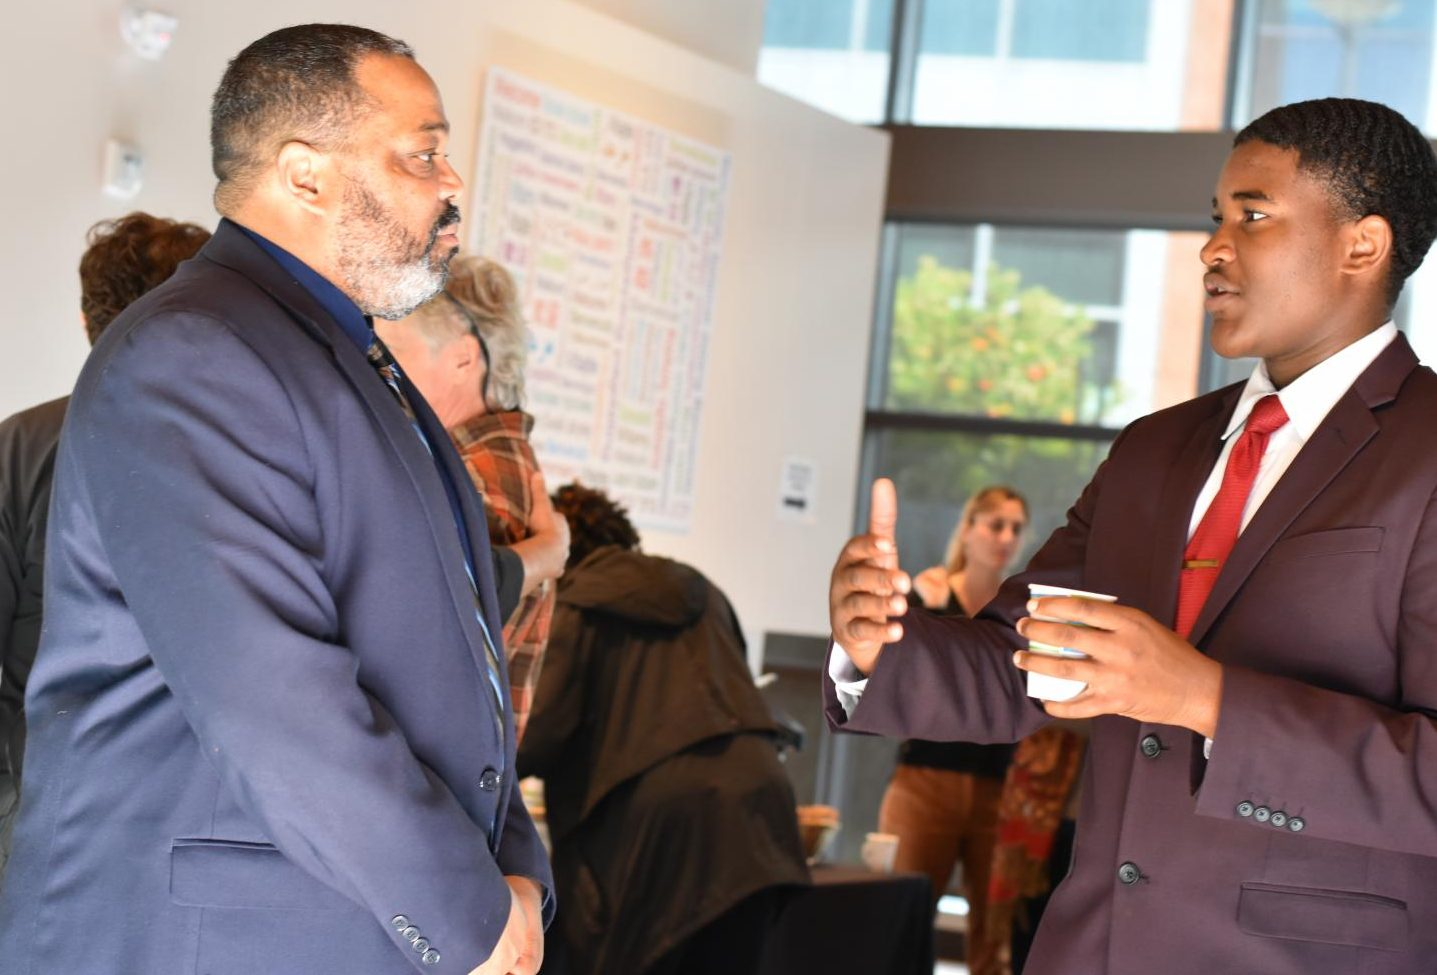 Interim President Damon Bell (left) speaks with Associated Student President Preston Akubuo-Onwuemeka during a meet-and-greet session for the new president at Fireside Hall Monday.